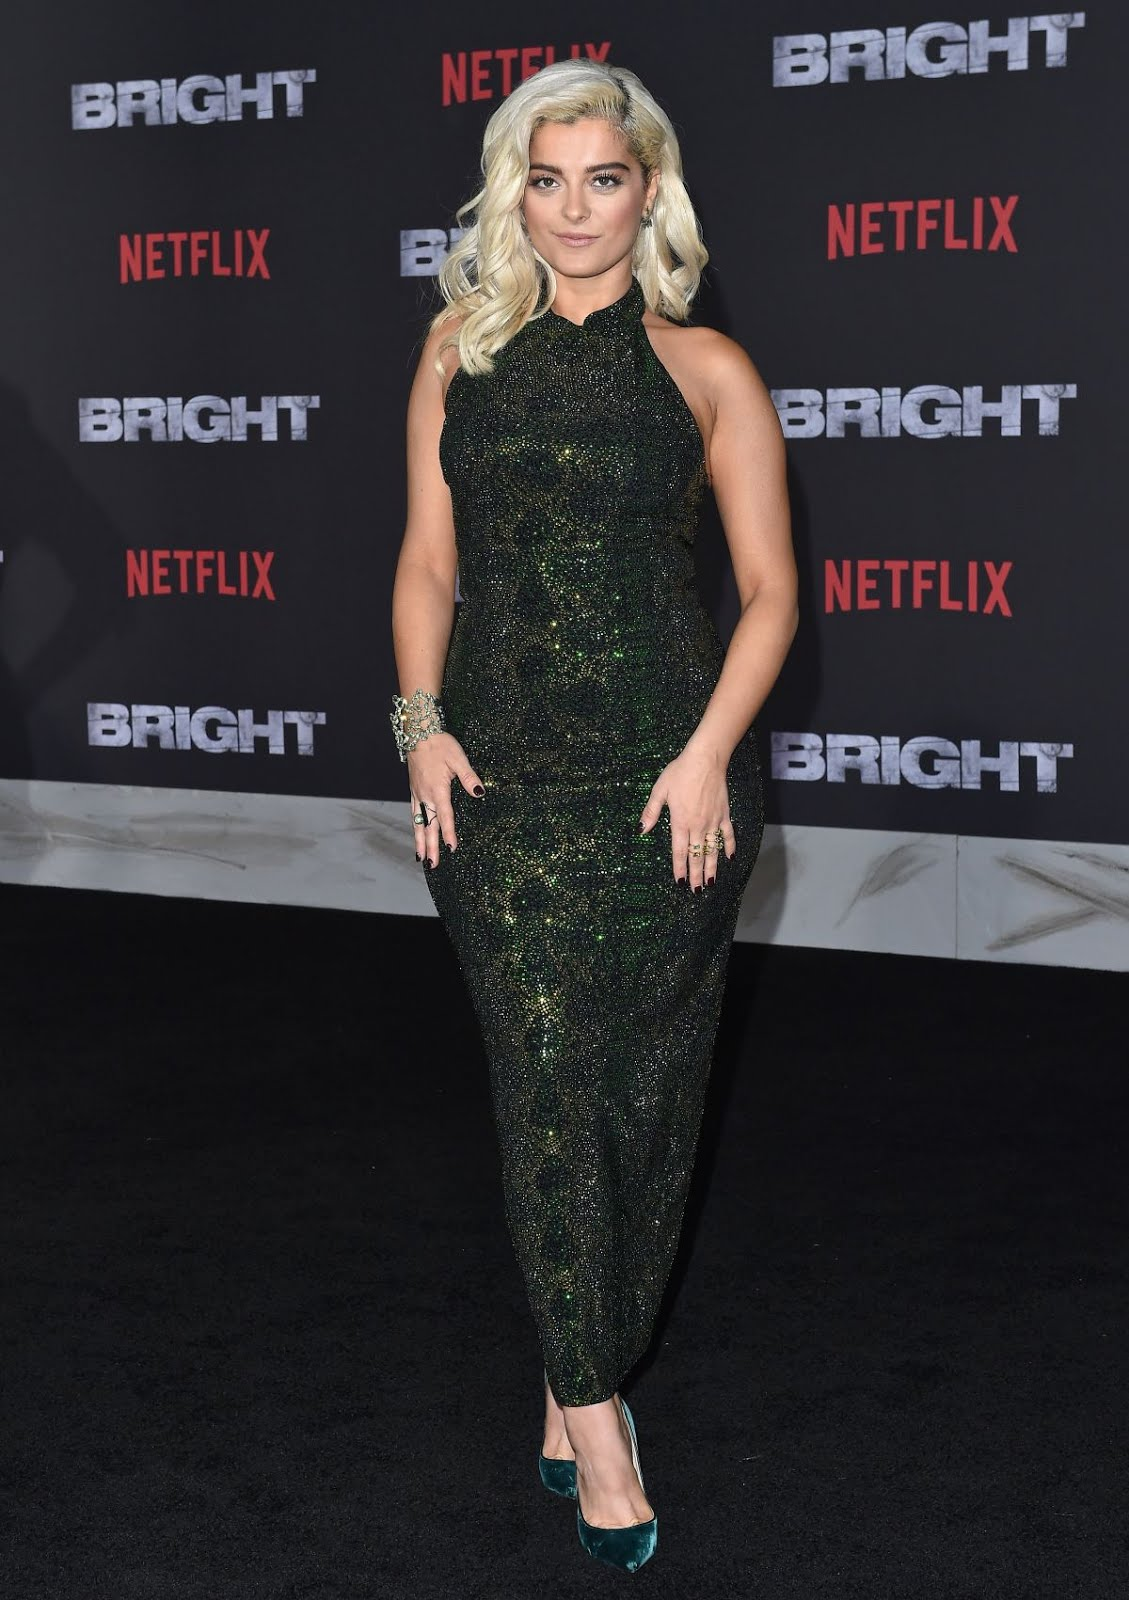 HD Wallpapers & Photos of Bebe Rexha at Bright Premiere in Los Angeles